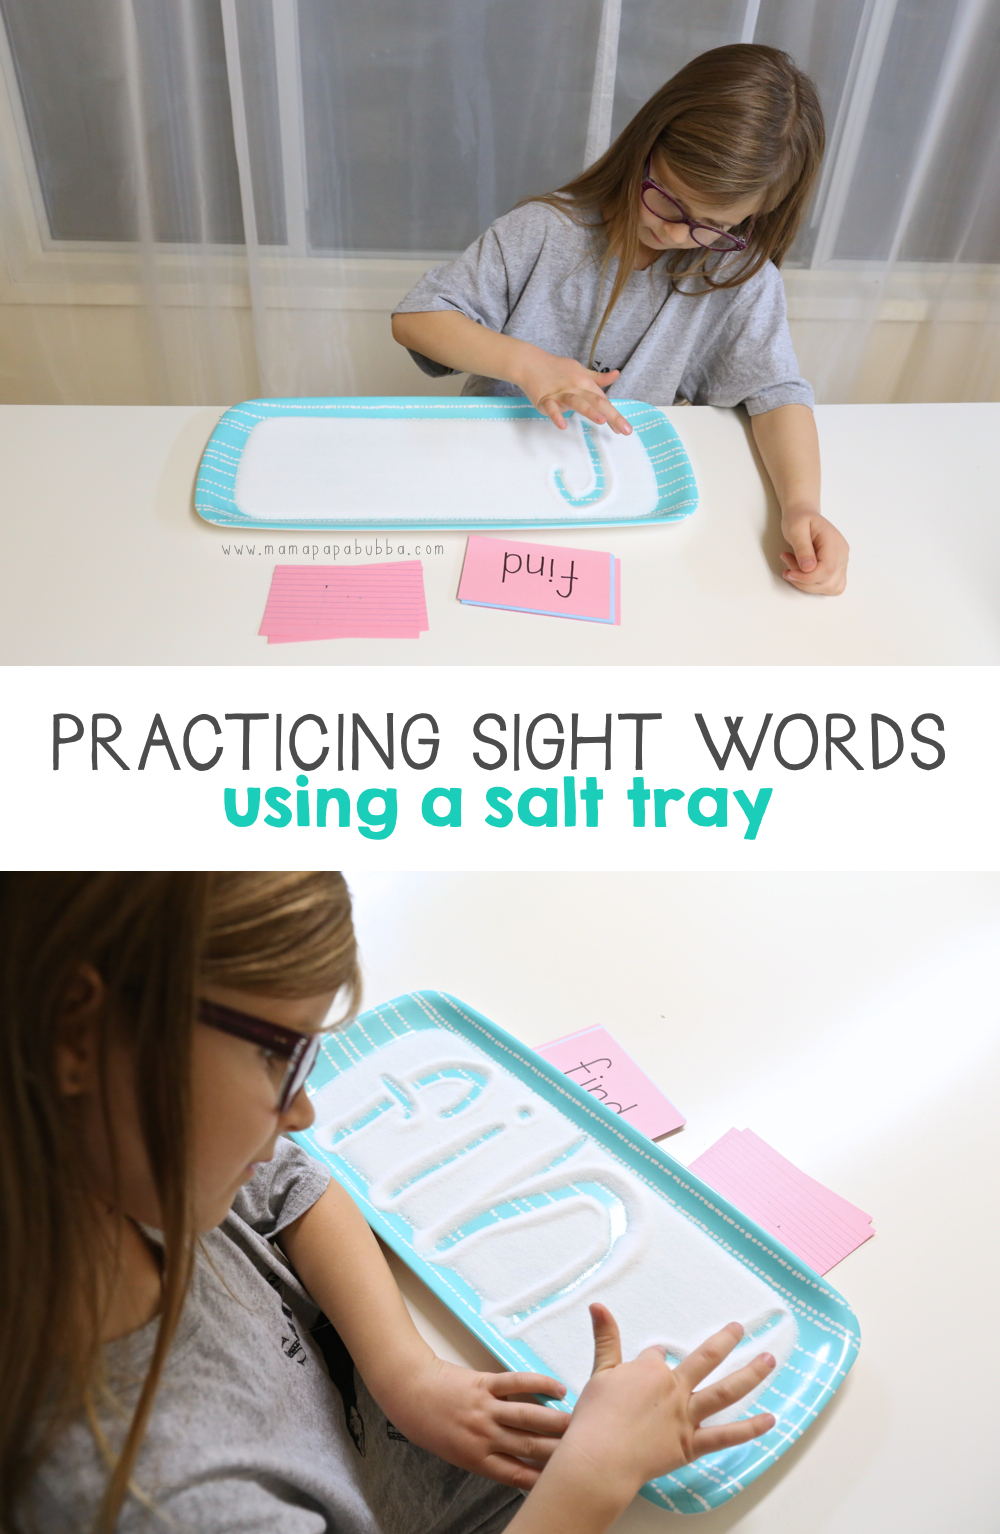 practicing-sight-words-using-a-salt-tray-mama-papa-bubba